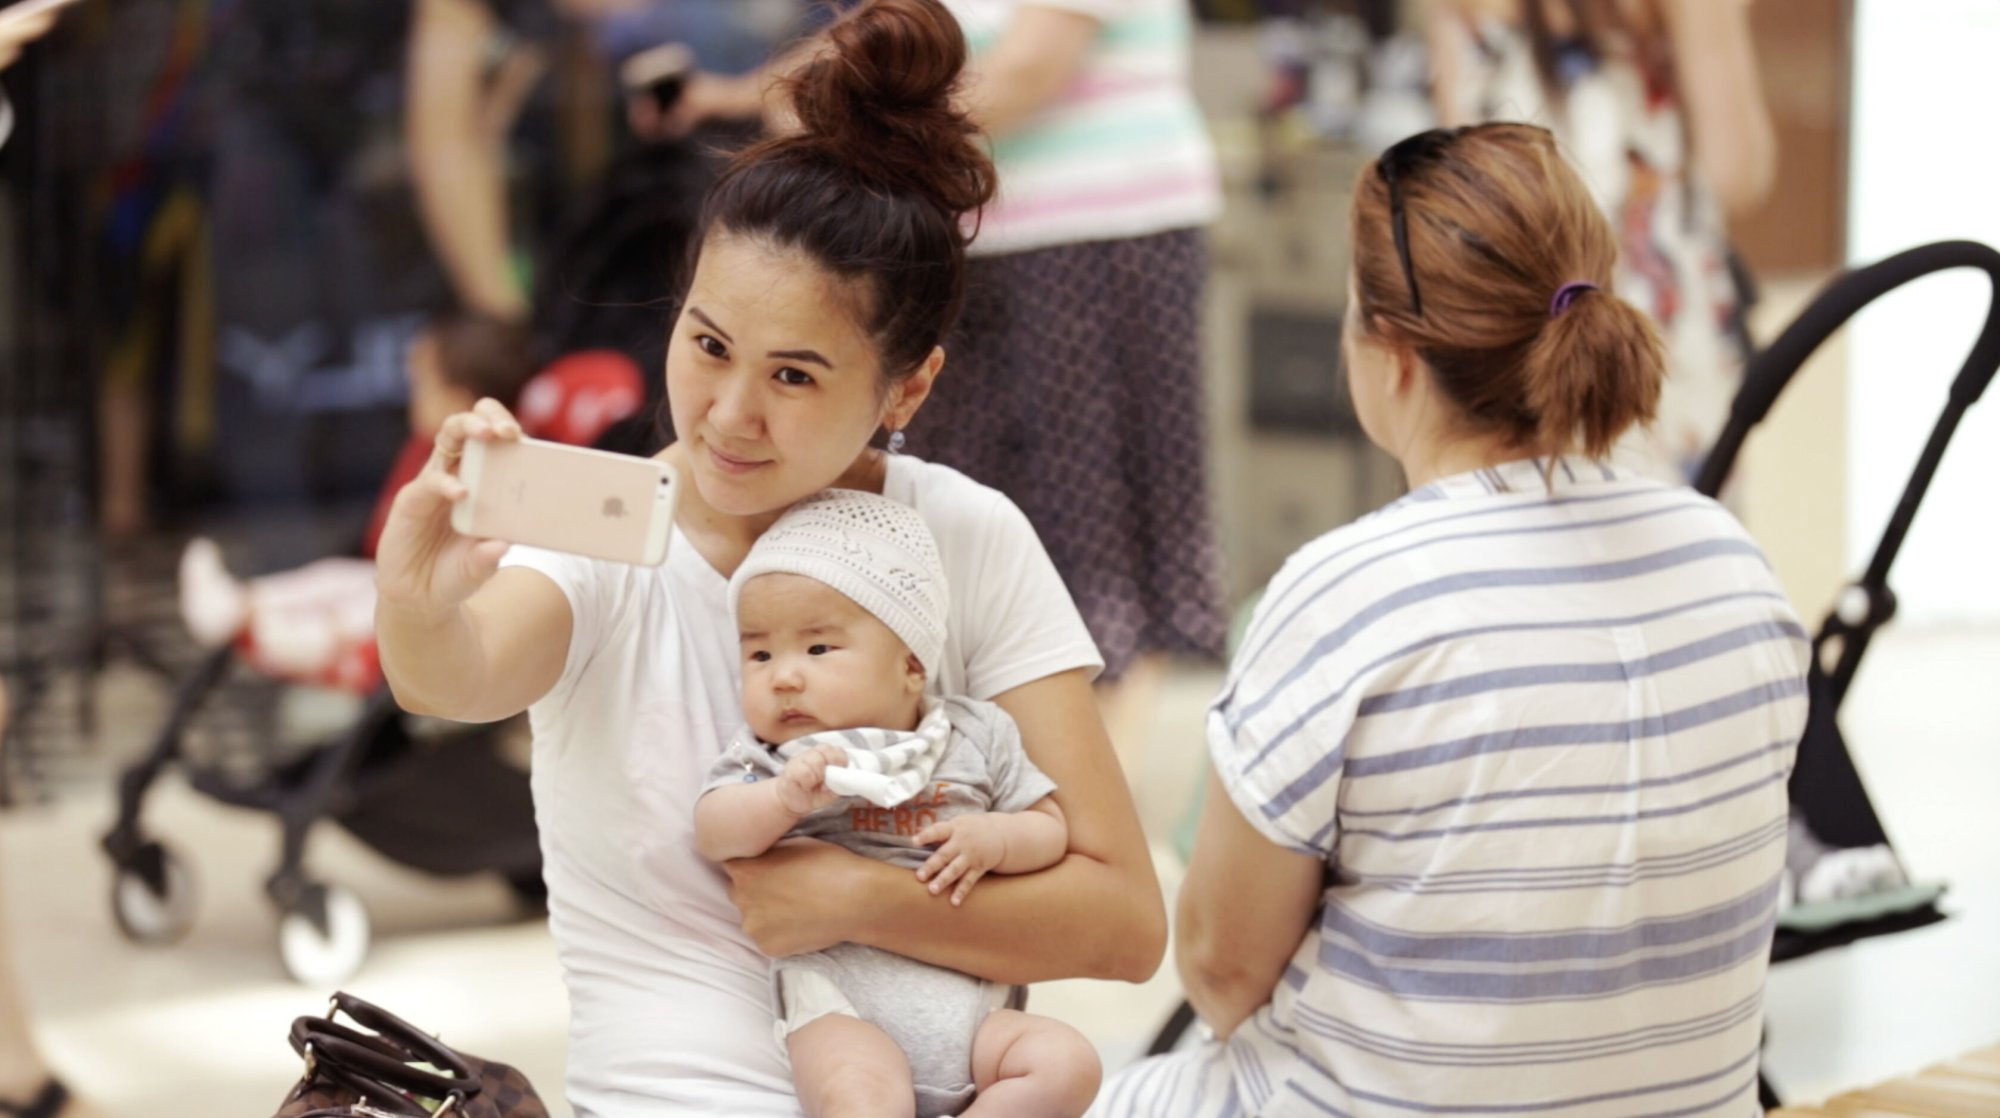 Central Asia: Technology is transforming Central Asia. A young mom snaps a selfie during a shopping trip at a local mall. Photo by Jay More Info